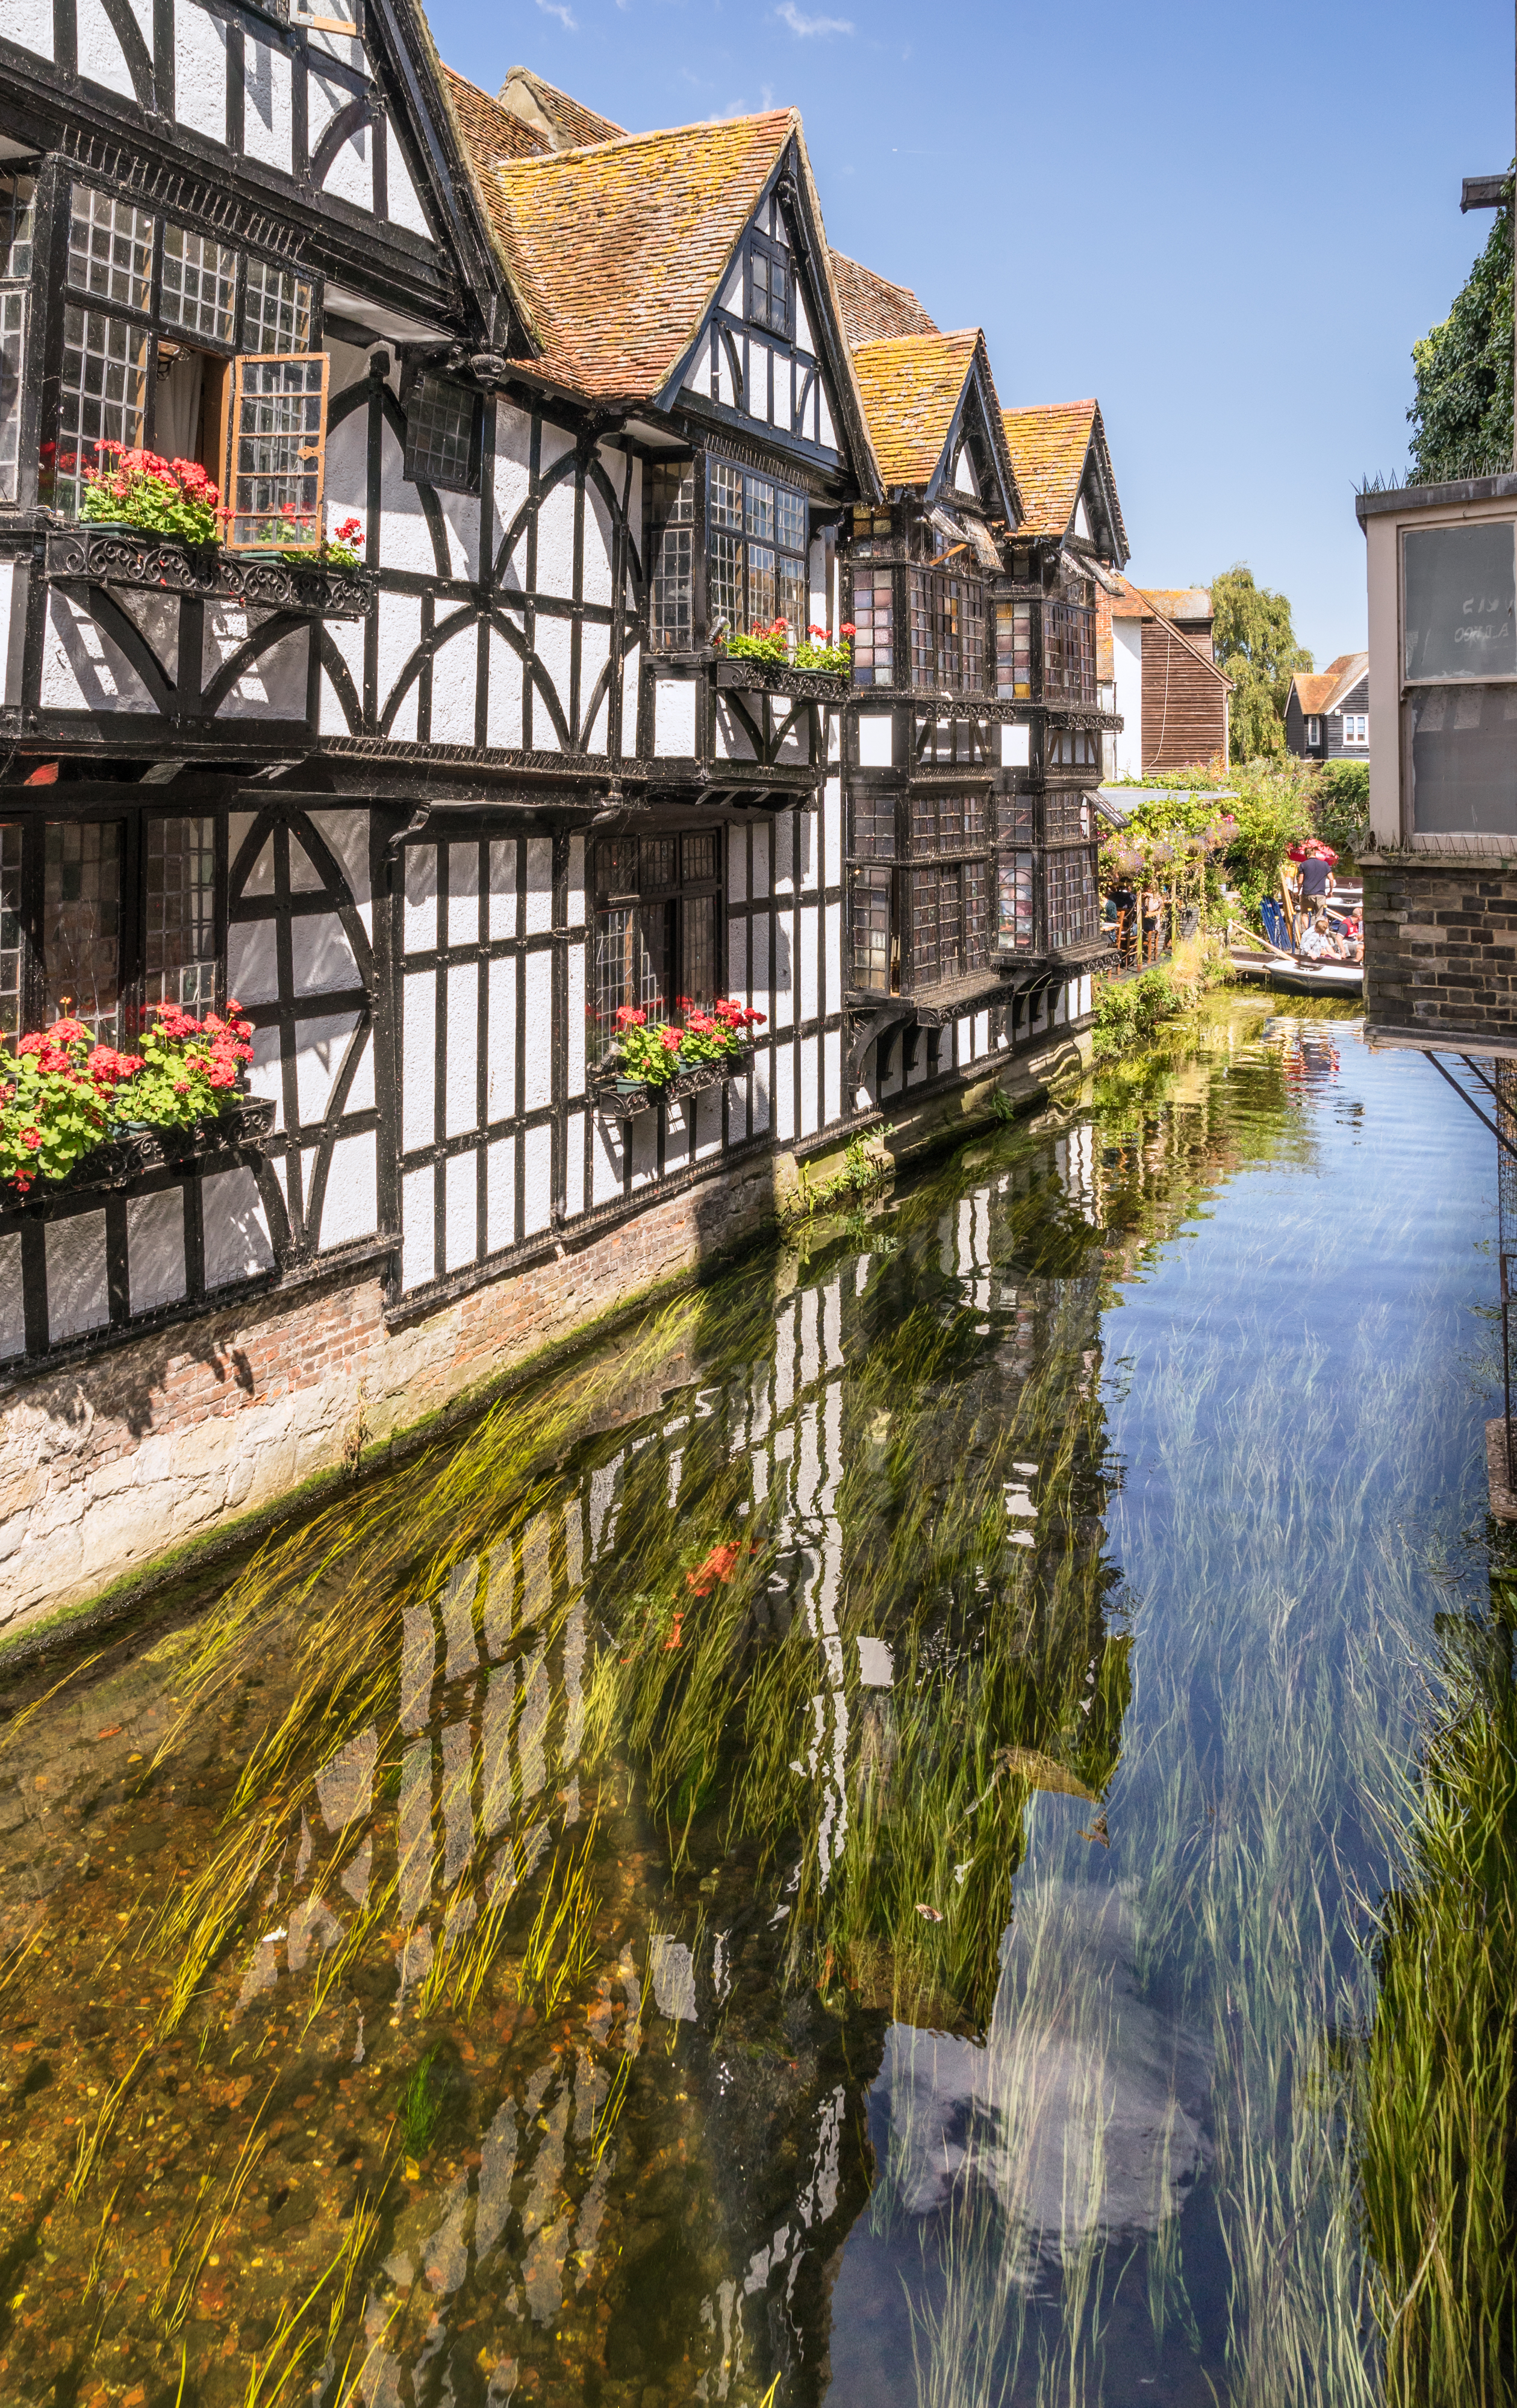 The River Stour in Canterbury, Kent, England